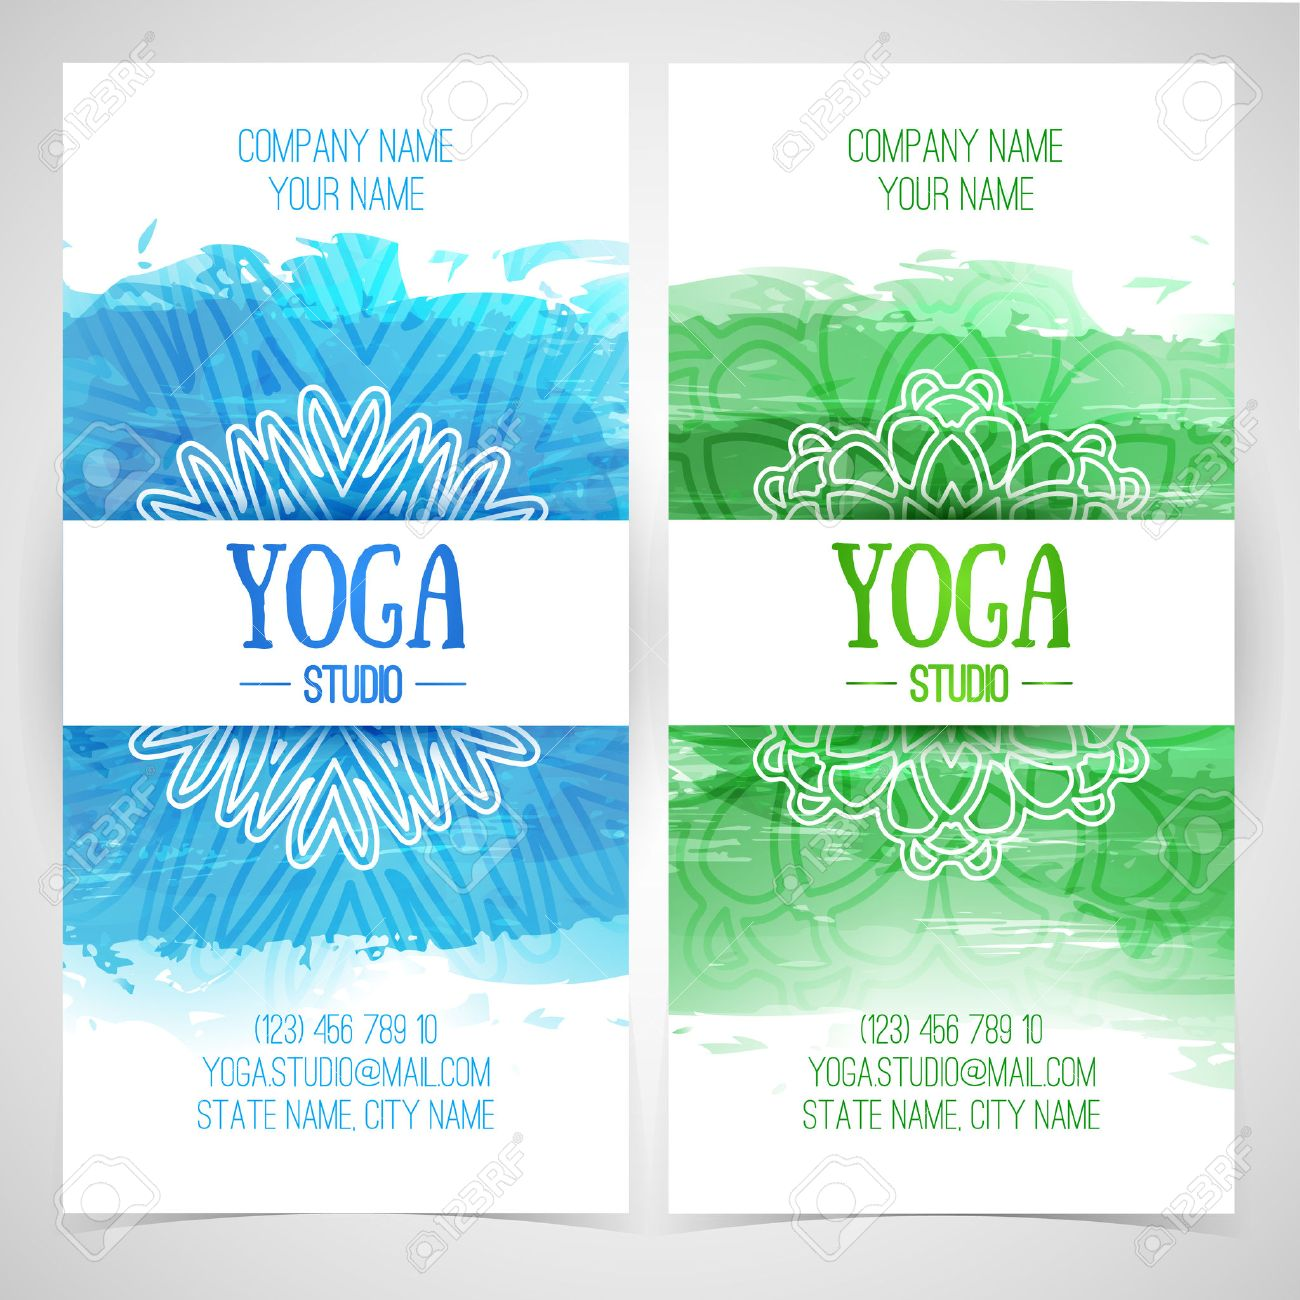 Set design template brochures cards invitations flyers for set design template brochures cards invitations flyers for a yoga studio with watercolor stopboris Image collections